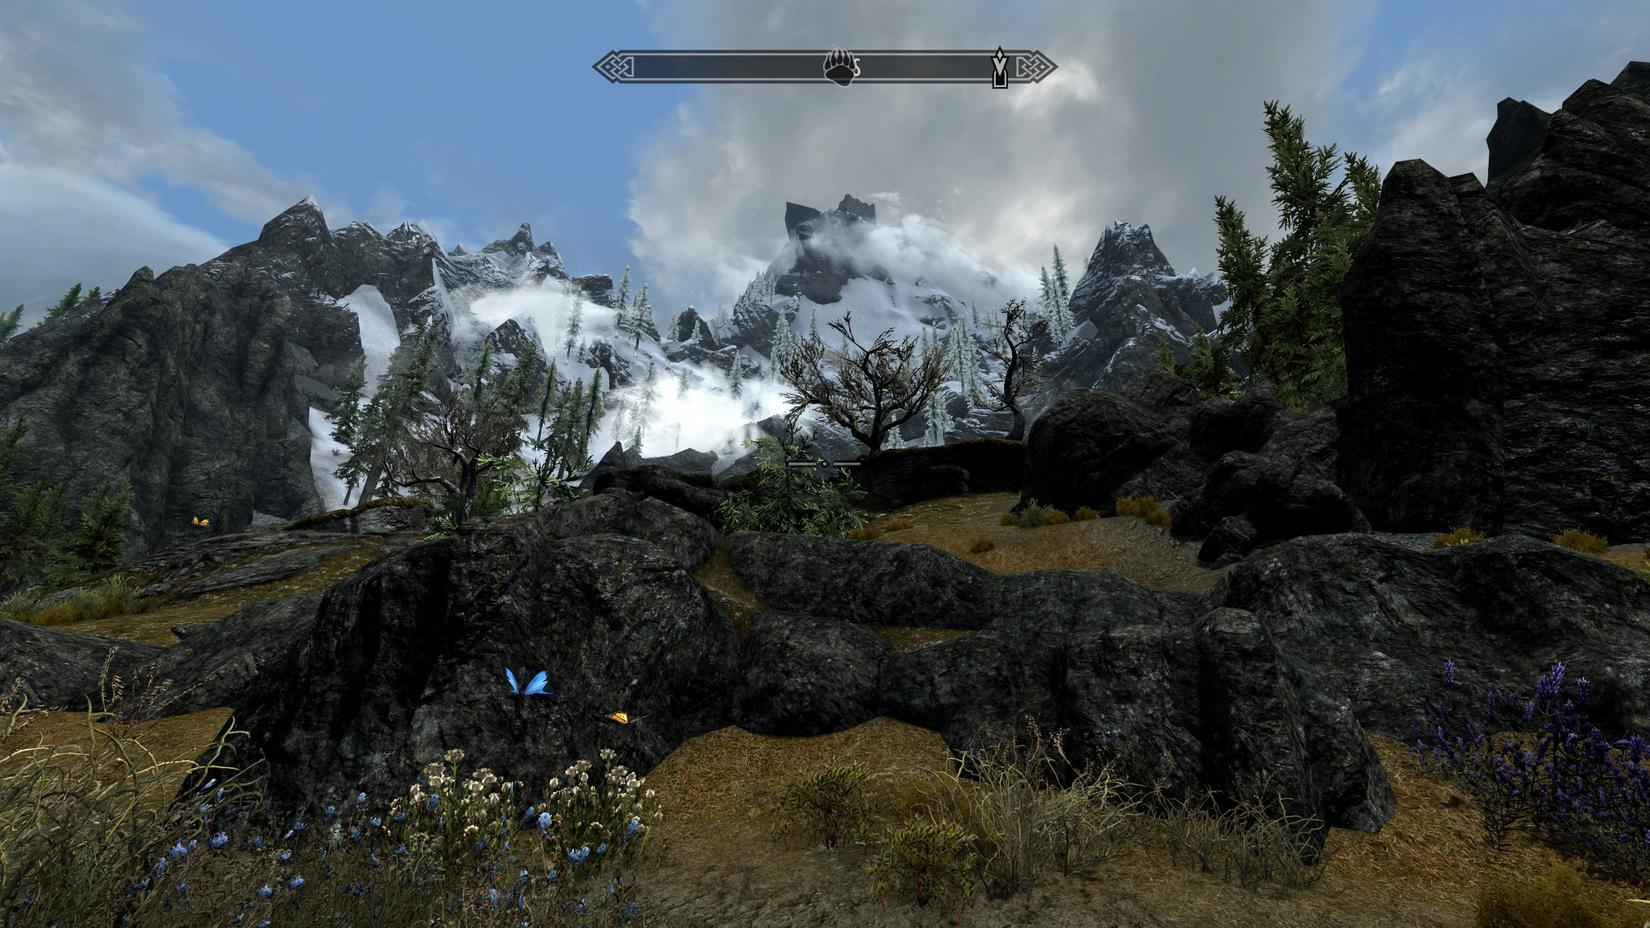 OT: Skyrim heavily modded and with higher textures - SimHQ